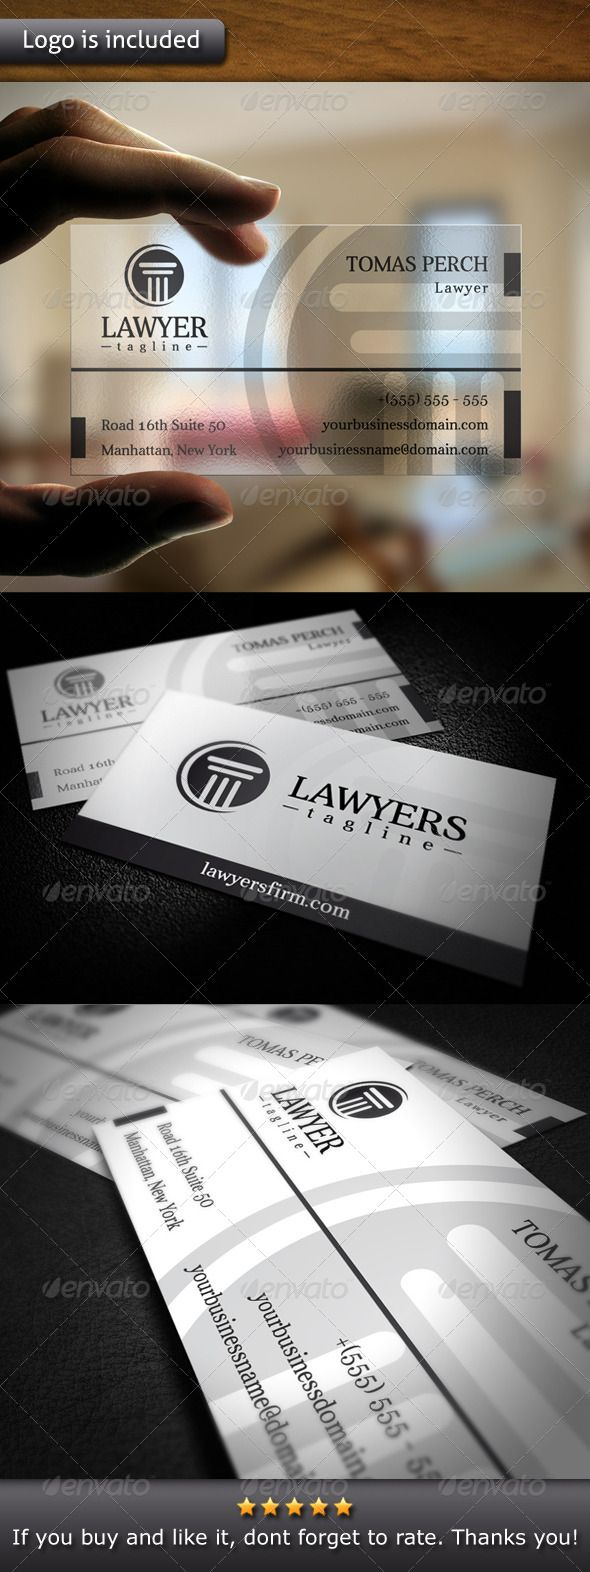 Law Firm Logo Business Card | Law firm logo, Corporate business and ...